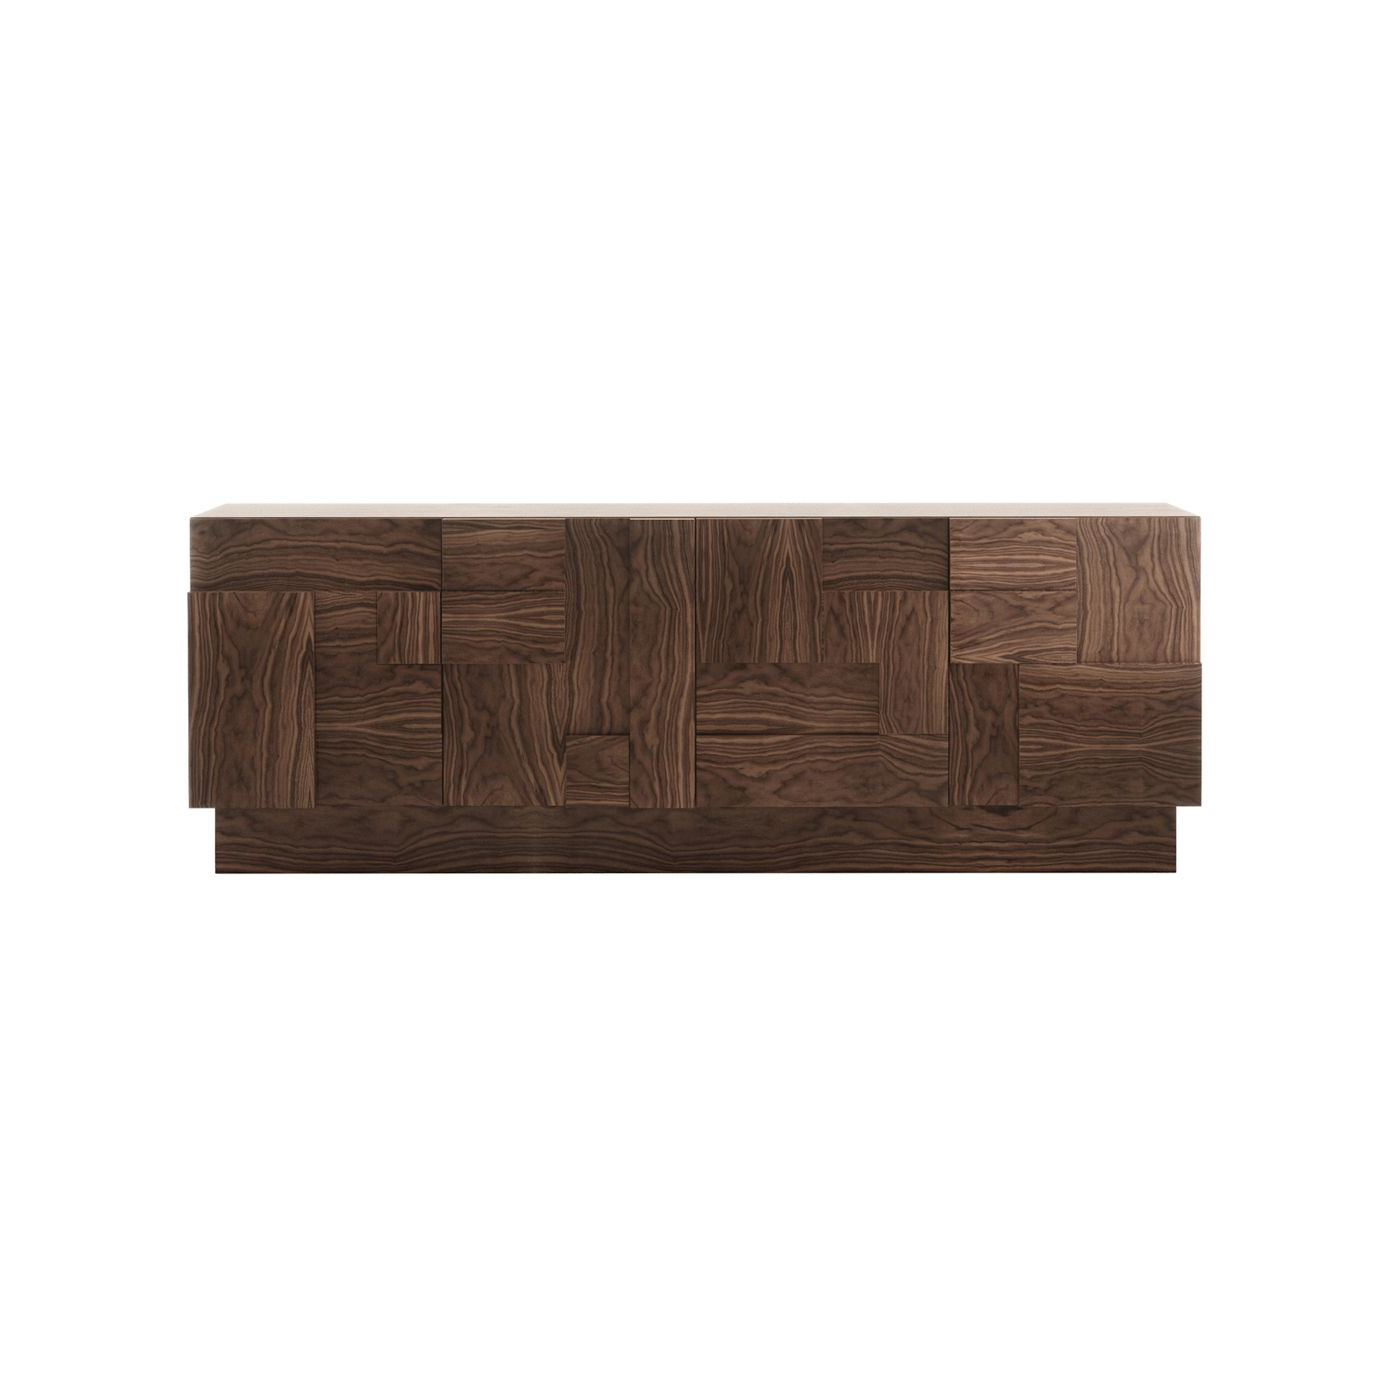 Decorar A Vida This Stunning Wooden Sideboard Has Four Intended For Ironwood 4 Door Sideboards (View 5 of 20)